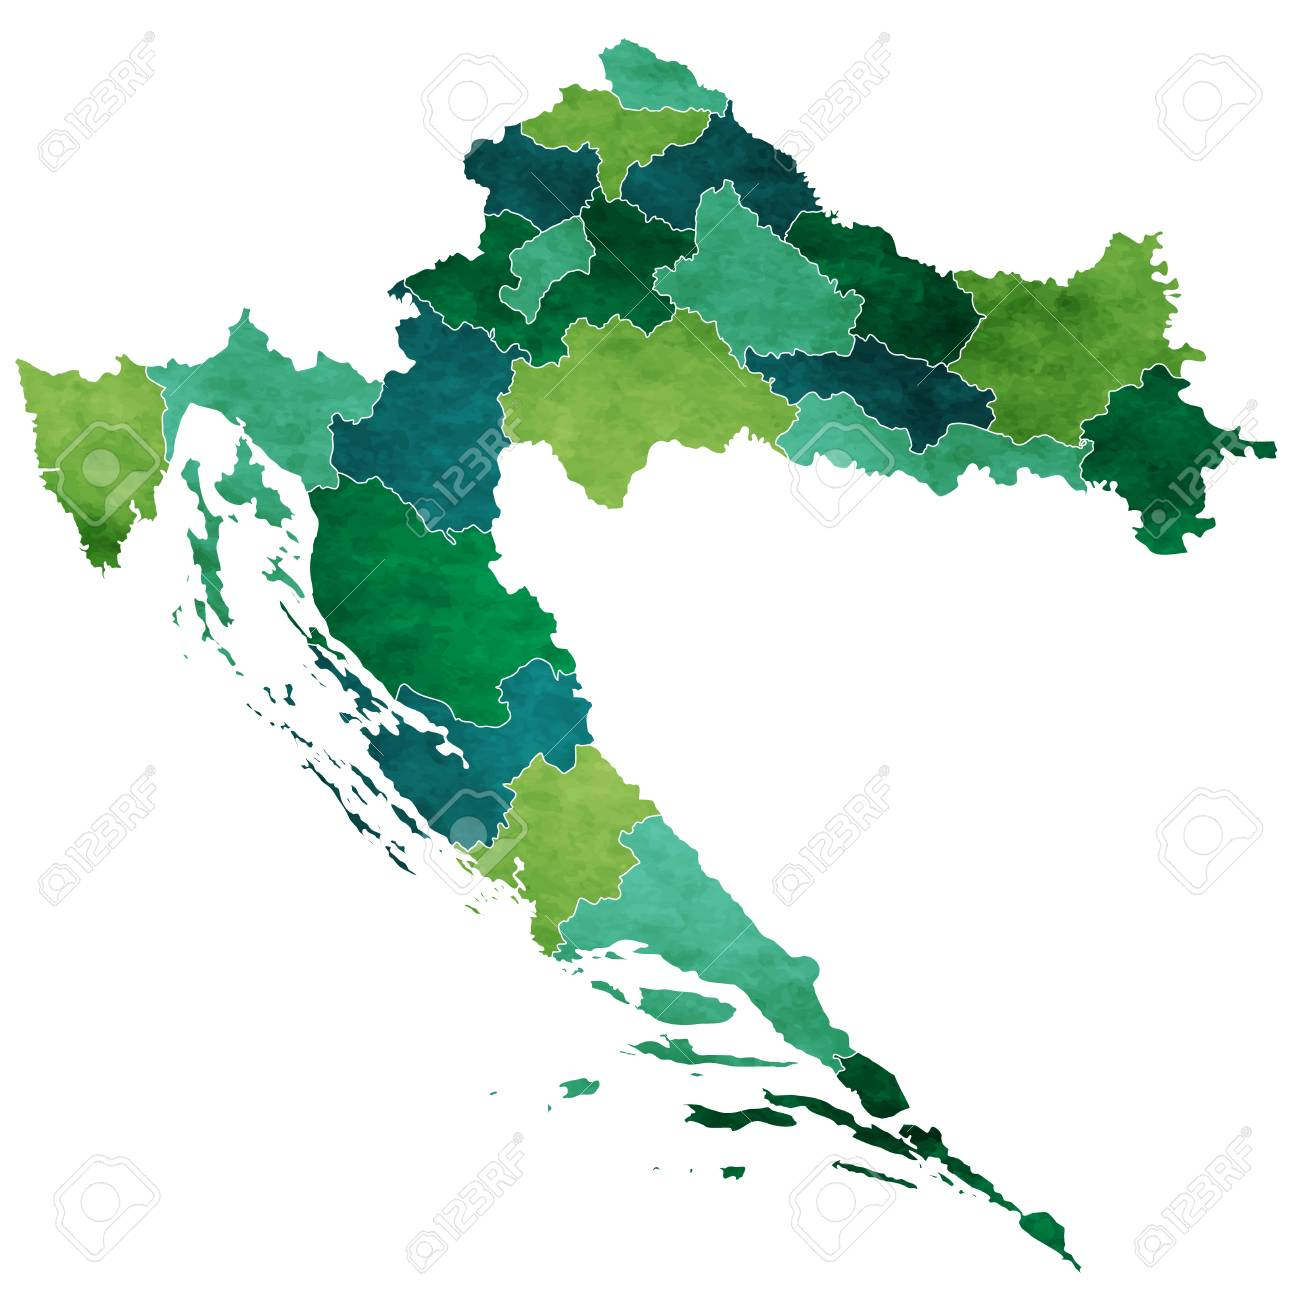 Croatia World Map Country Icon Royalty Free Cliparts, Vectors, And ...